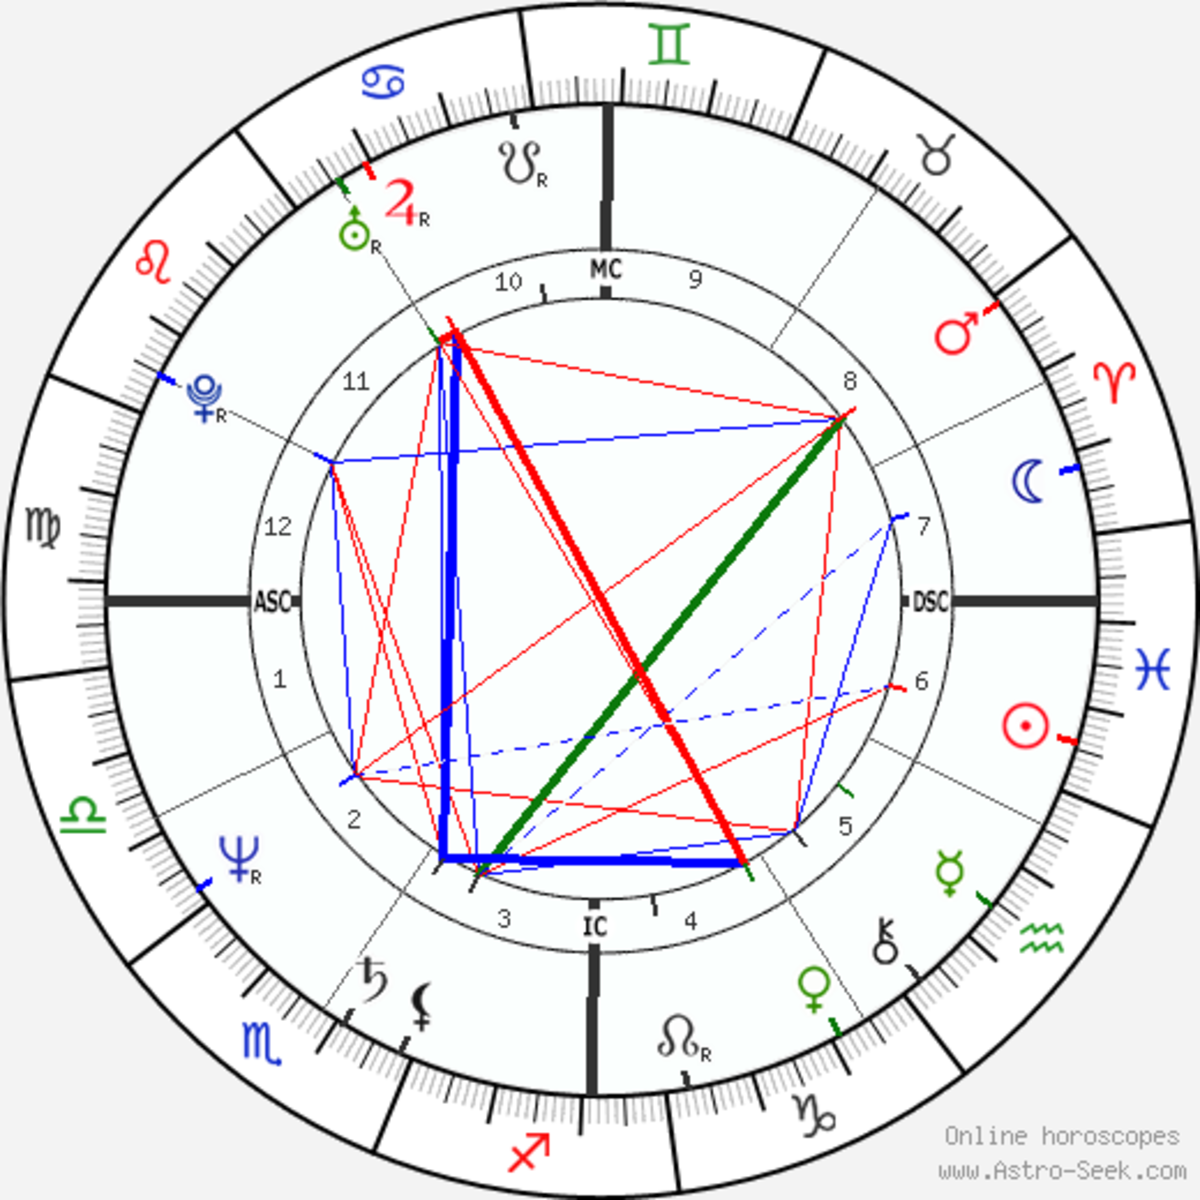 Free Birth Charts and Readings: Five Great Sites